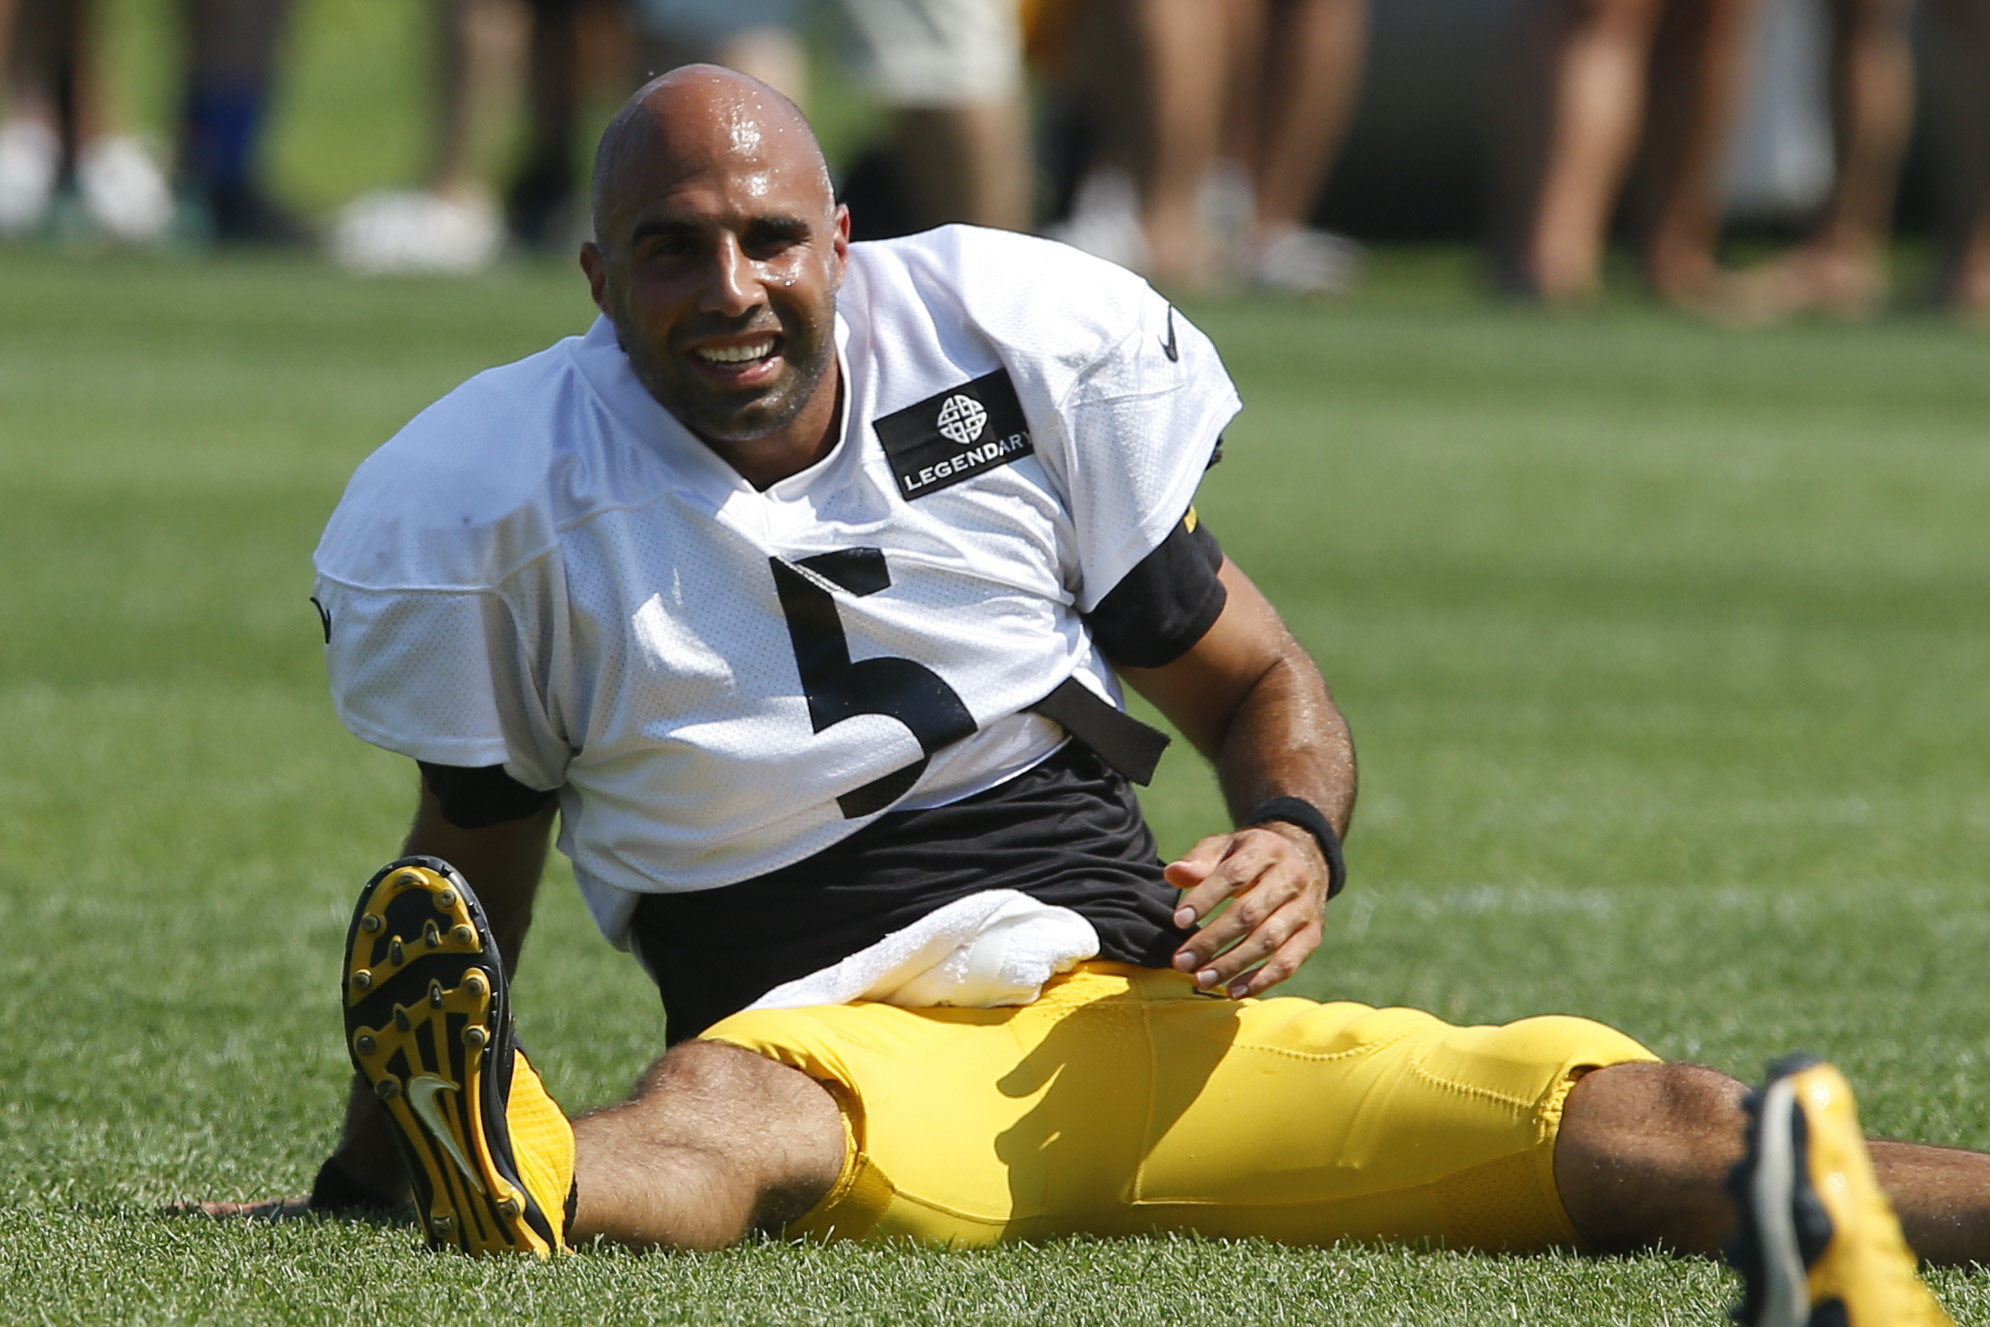 FILE - In this Aug. 16, 2015 file photo, Pittsburgh Steelers quarterback Bruce Gradkowski (5) takes part in drills at their NFL football training camp in Latrobe, Pa. The Steelers signed backup quarterback Bruce Gradkowski to a one-year deal on Monday, Ma